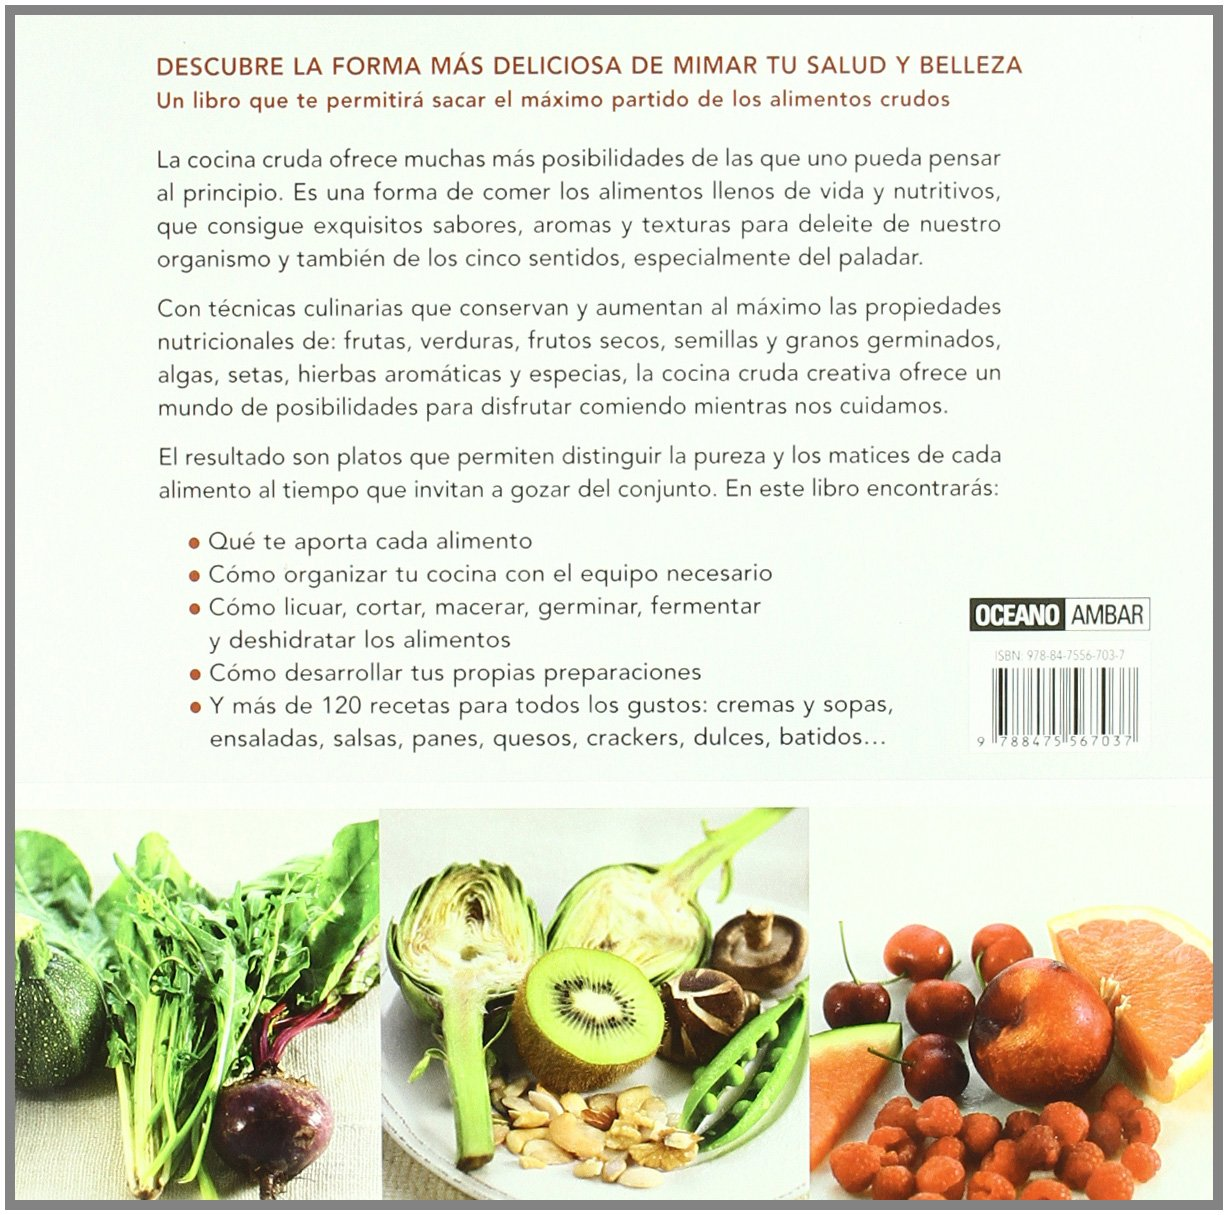 Cocina cruda creativa: PASSOLA MERCE Y VILADEVALL EDGA: 9788475567037: Amazon.com: Books